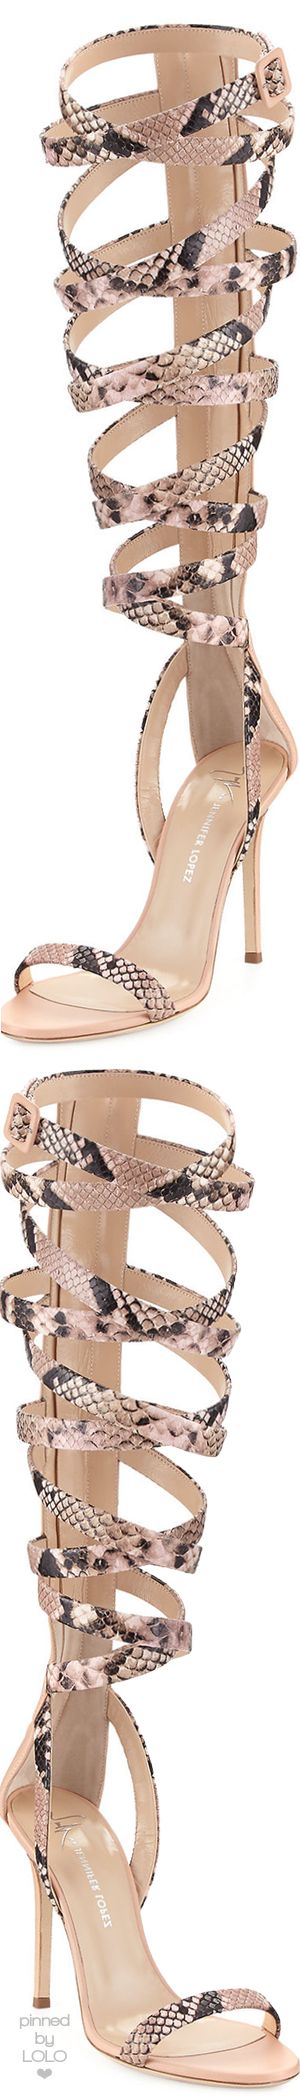 Giuseppe for Jennifer Lopez 105 Snake-Print Leather Lace-Up Sandals